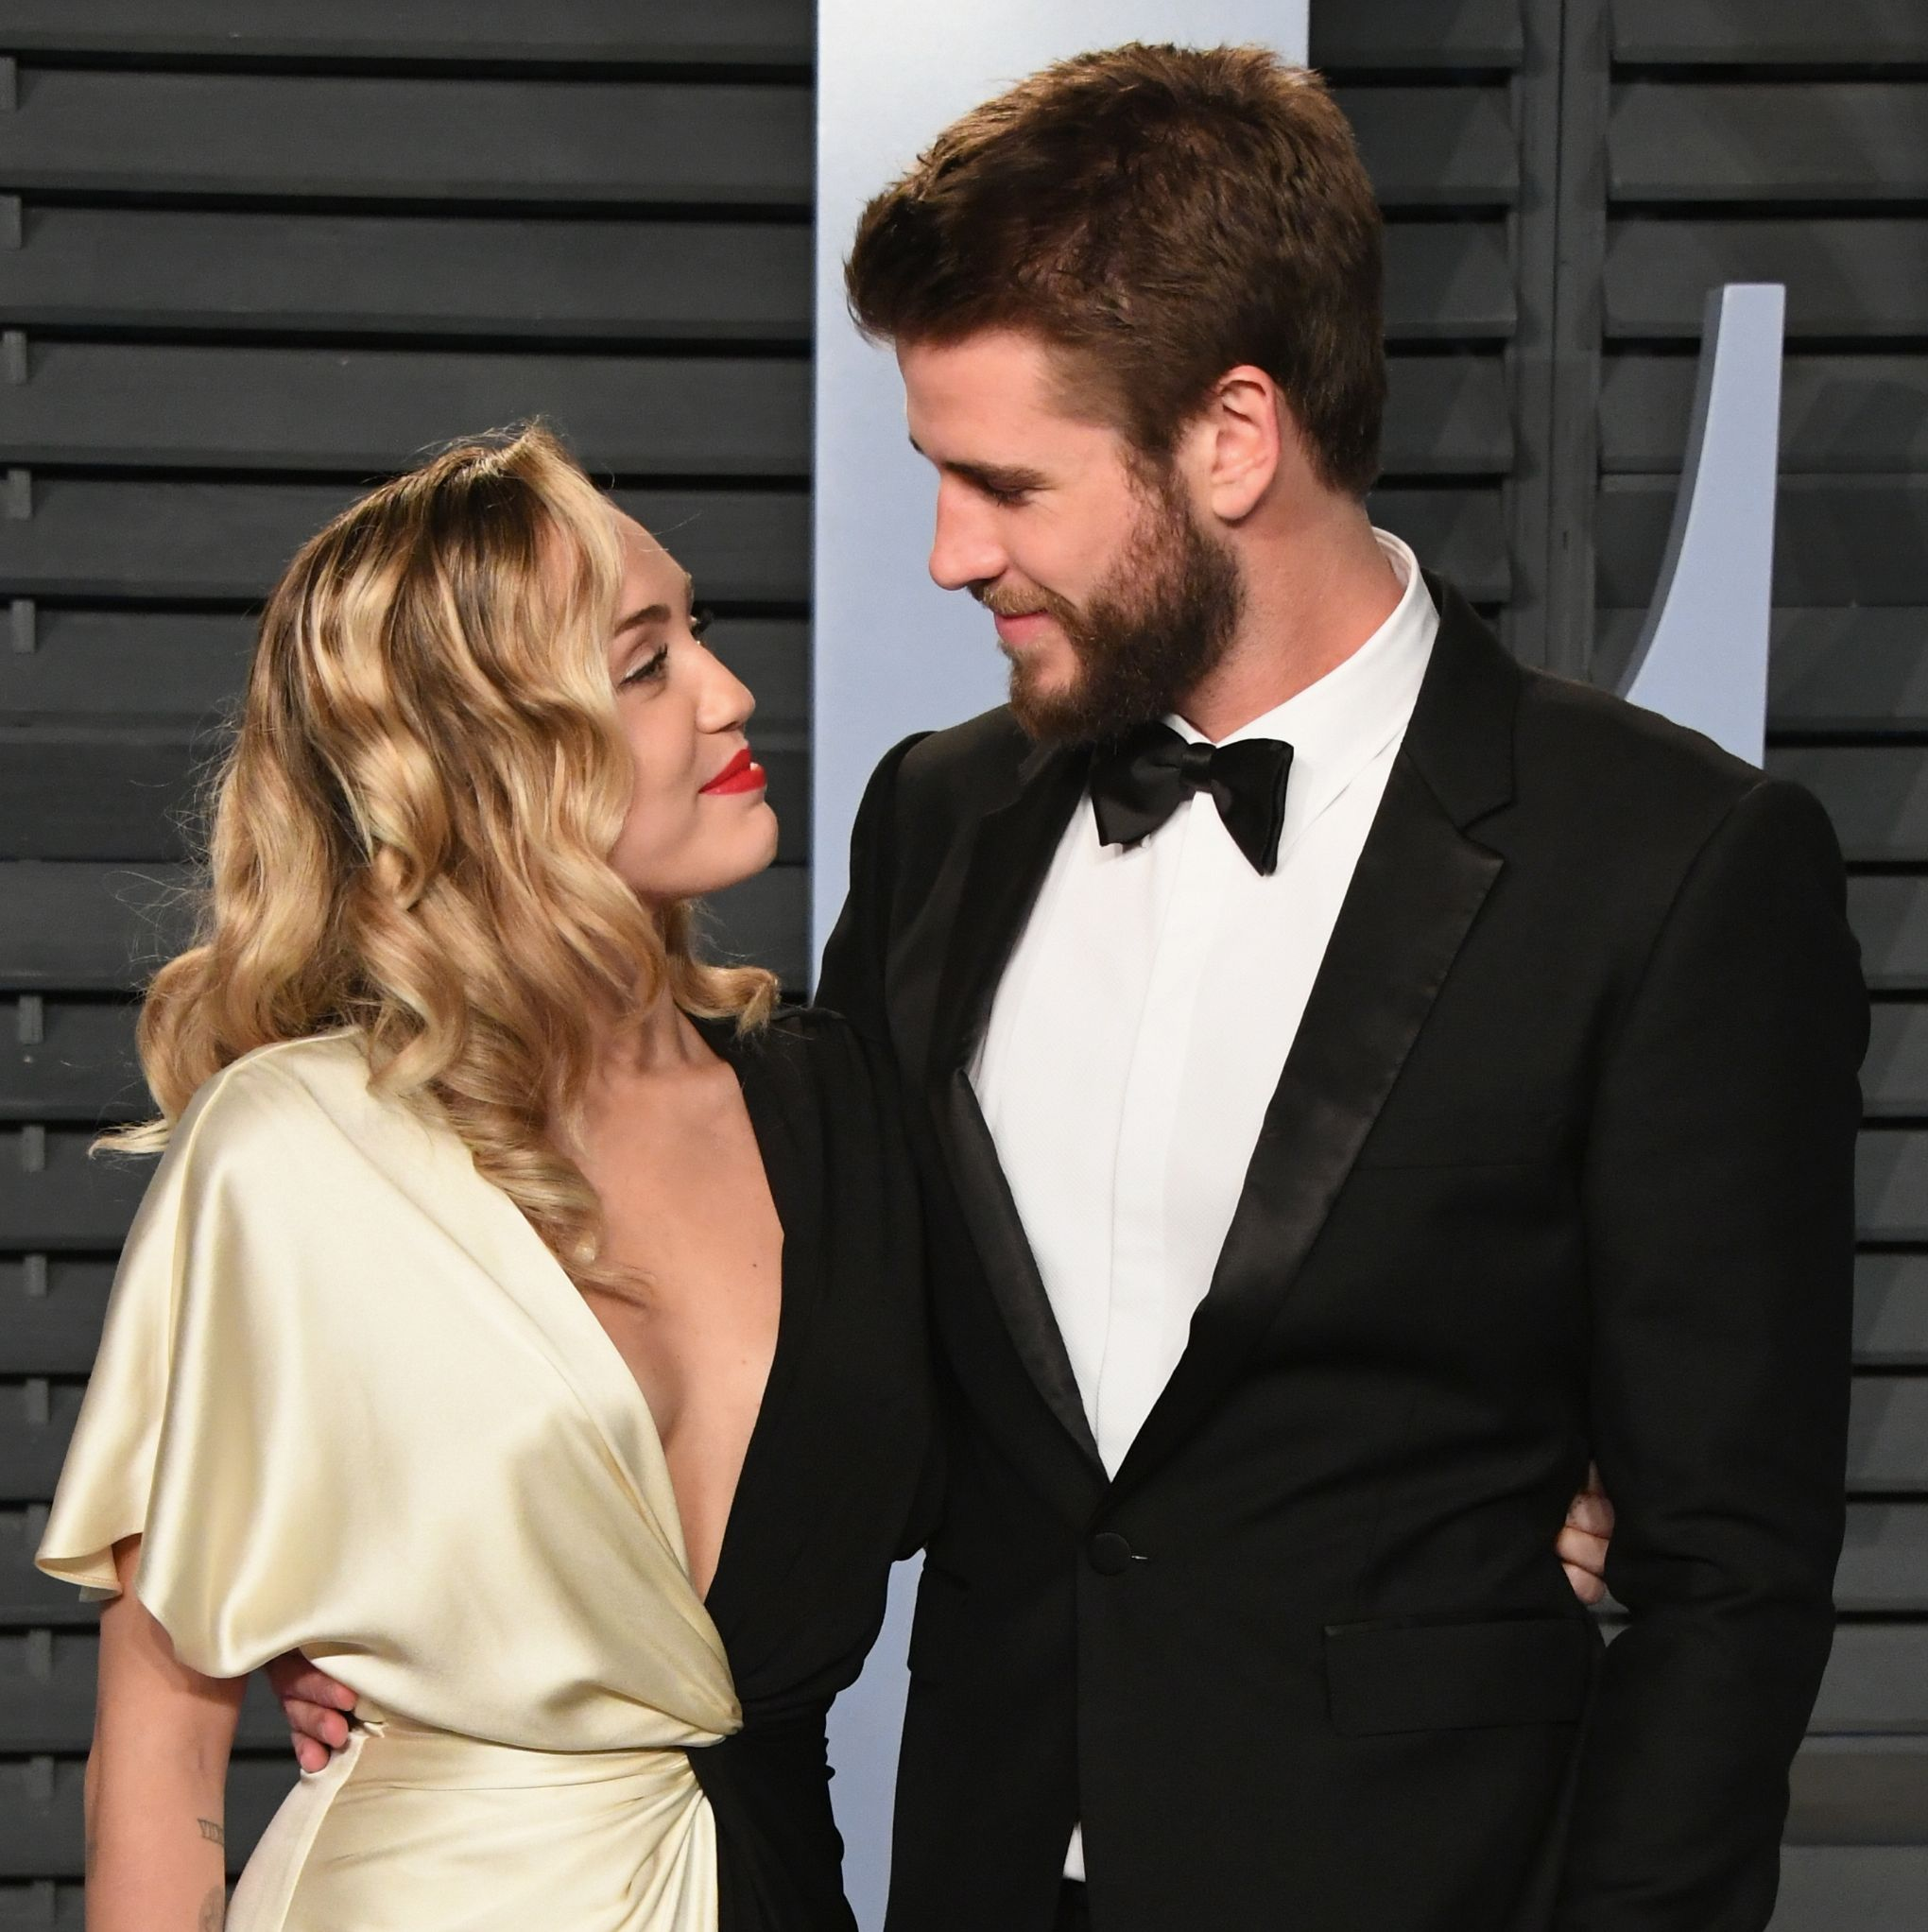 Miley Cyrus Shares New Photos of Her Wedding to Liam Hemsworth